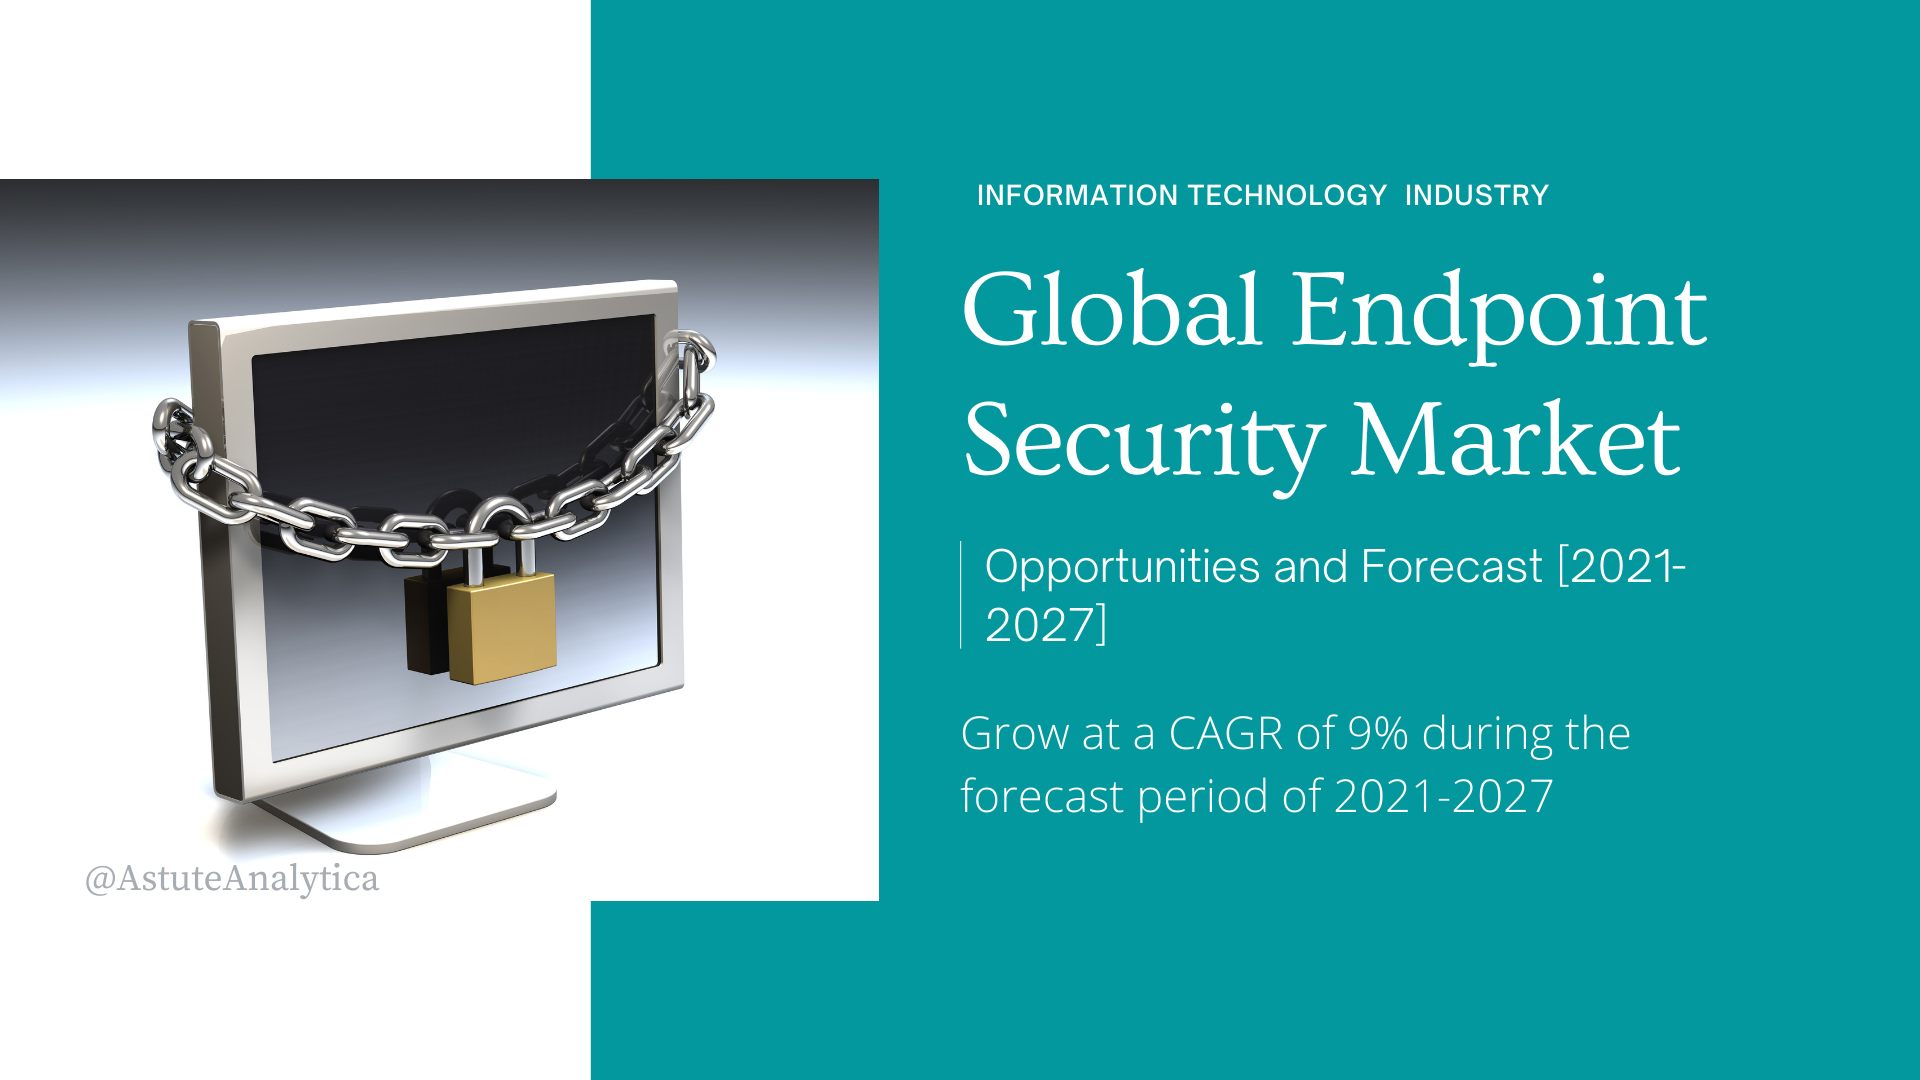 Endpoint Security Market is projected to expand at a CAGR of 9% by 2027